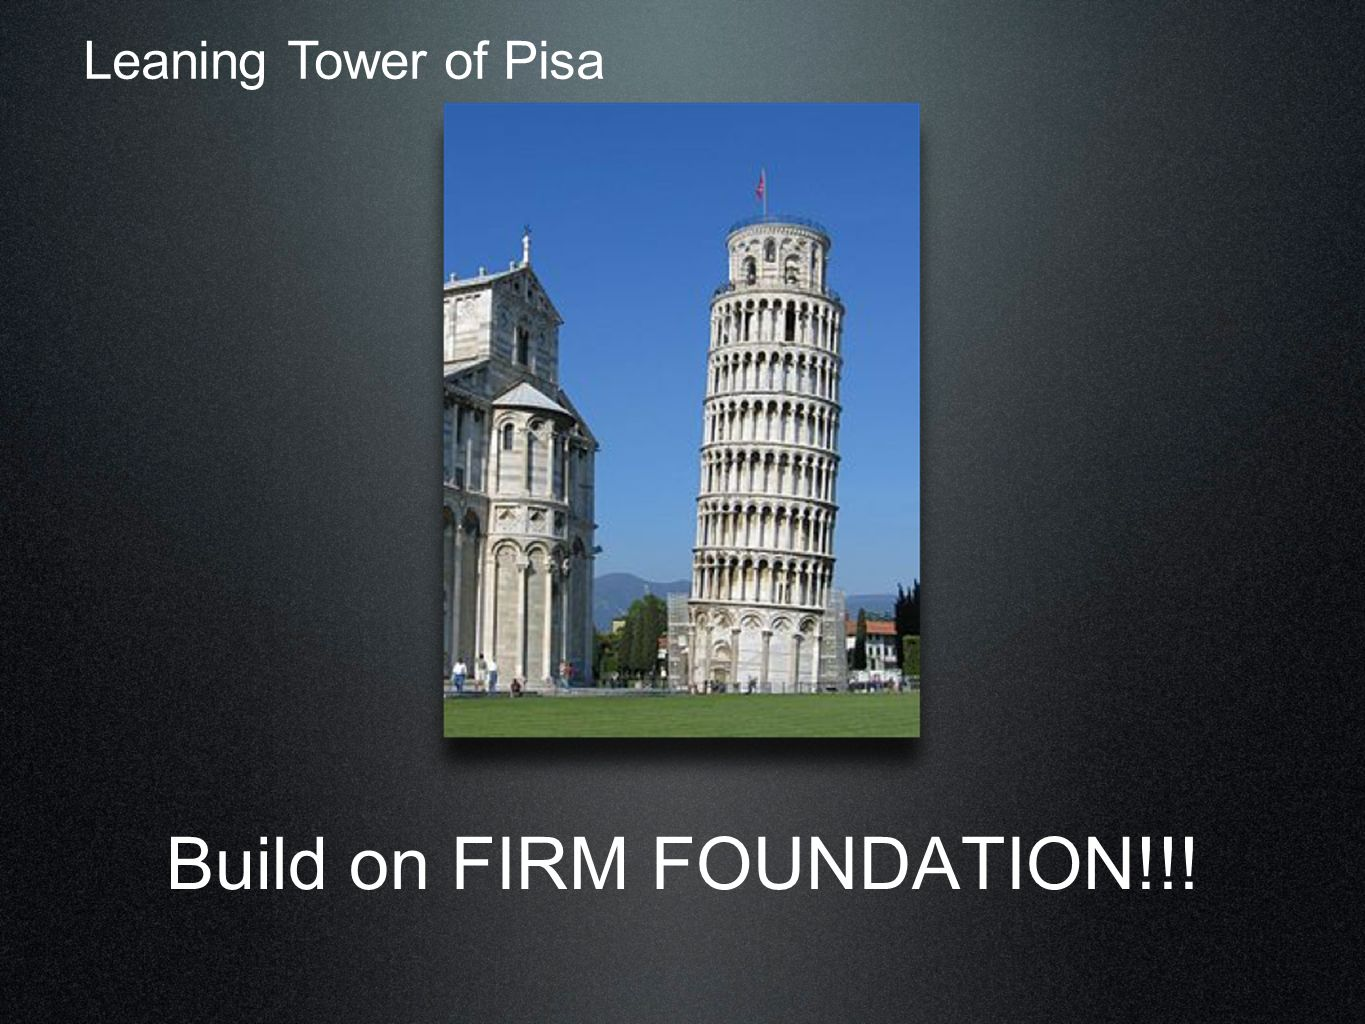 Build on FIRM FOUNDATION!!!